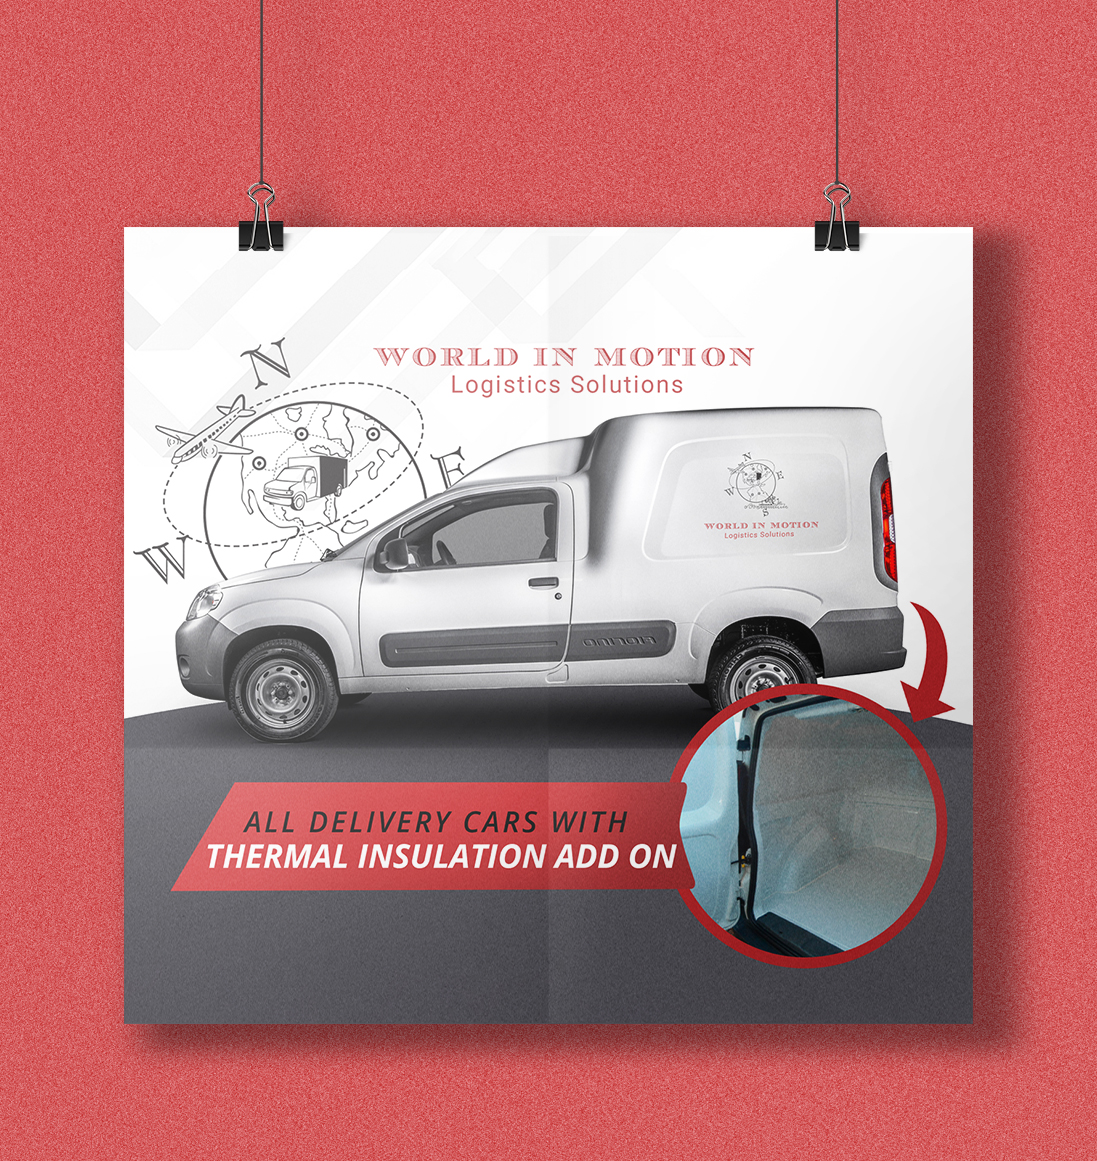 We handle fragile goods: Vehicles with thermal insulation add on